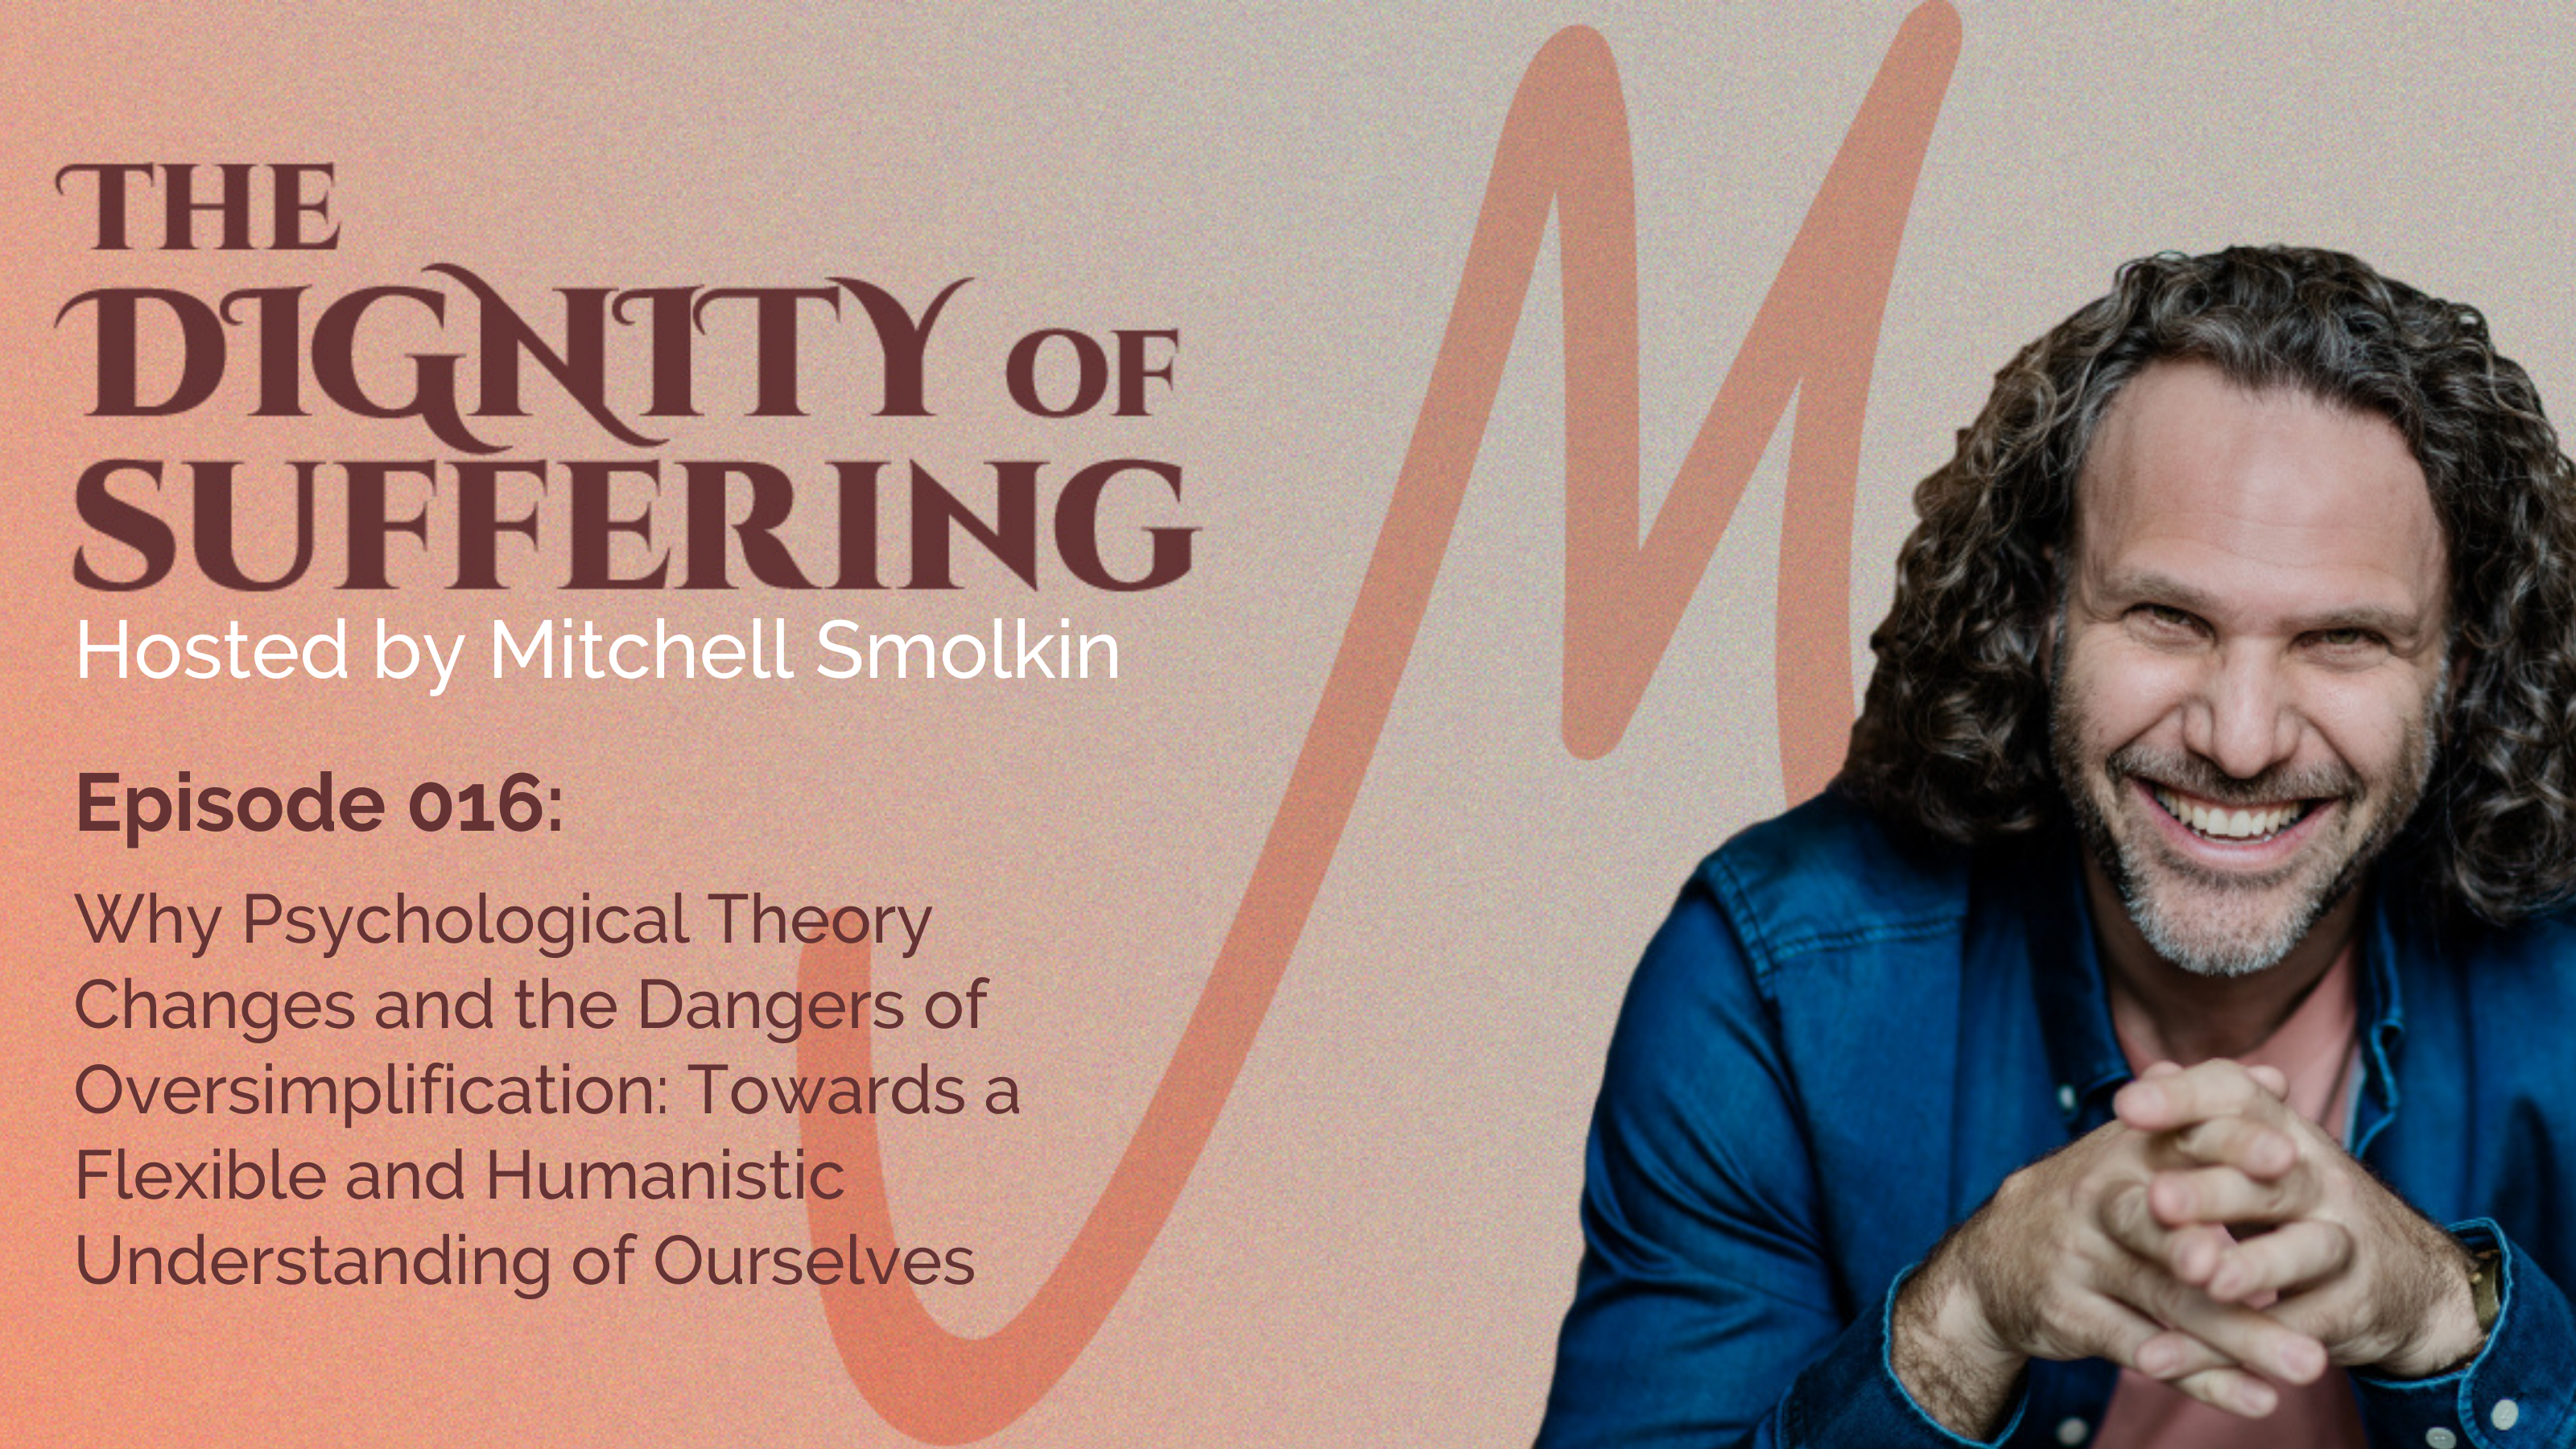 Episode 016: Why Psychological Theory Changes & the Dangers of Oversimplification: Towards a Flexible and Humanistic Understanding of Ourselves